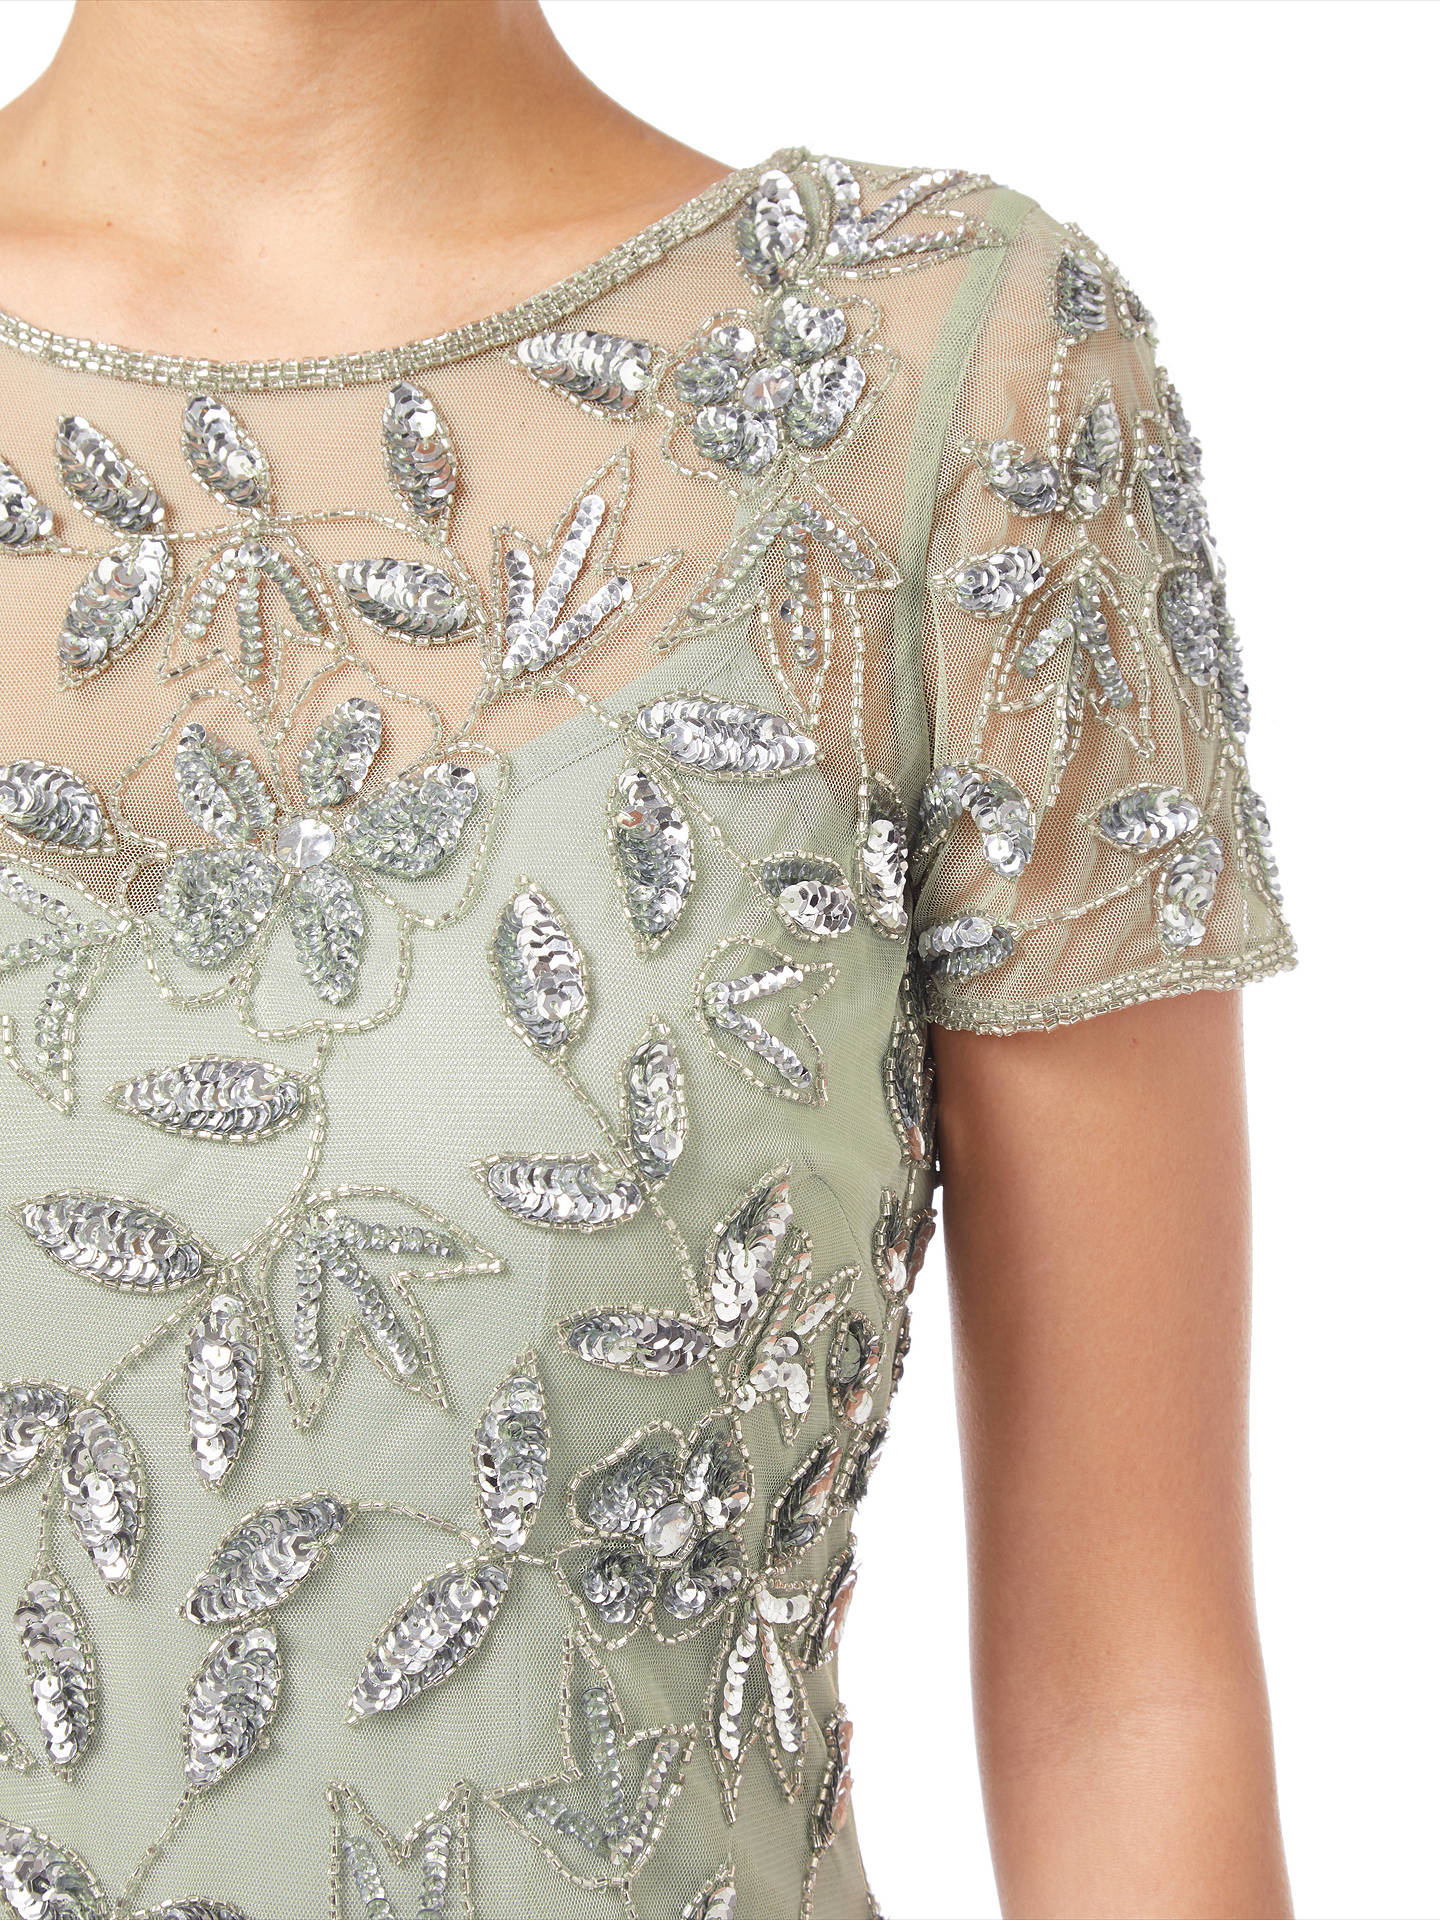 Buy Adrianna Papell Floral Beaded Godet Dress, Mint, 8 Online at johnlewis.com